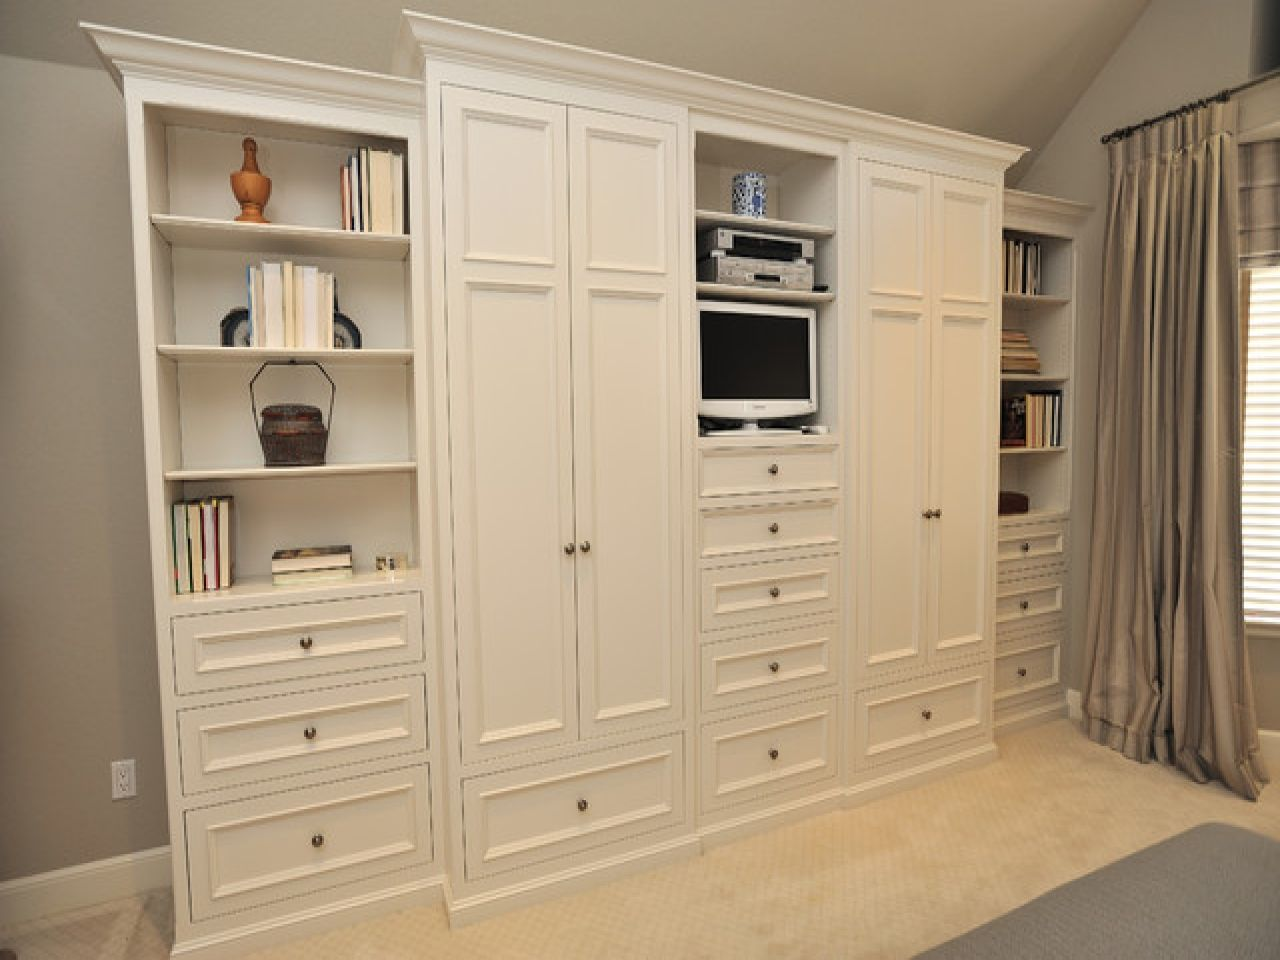 Bedroom-Wall-Units-With-Drawers-Master-Bedroom-Wall-Storage-white ...